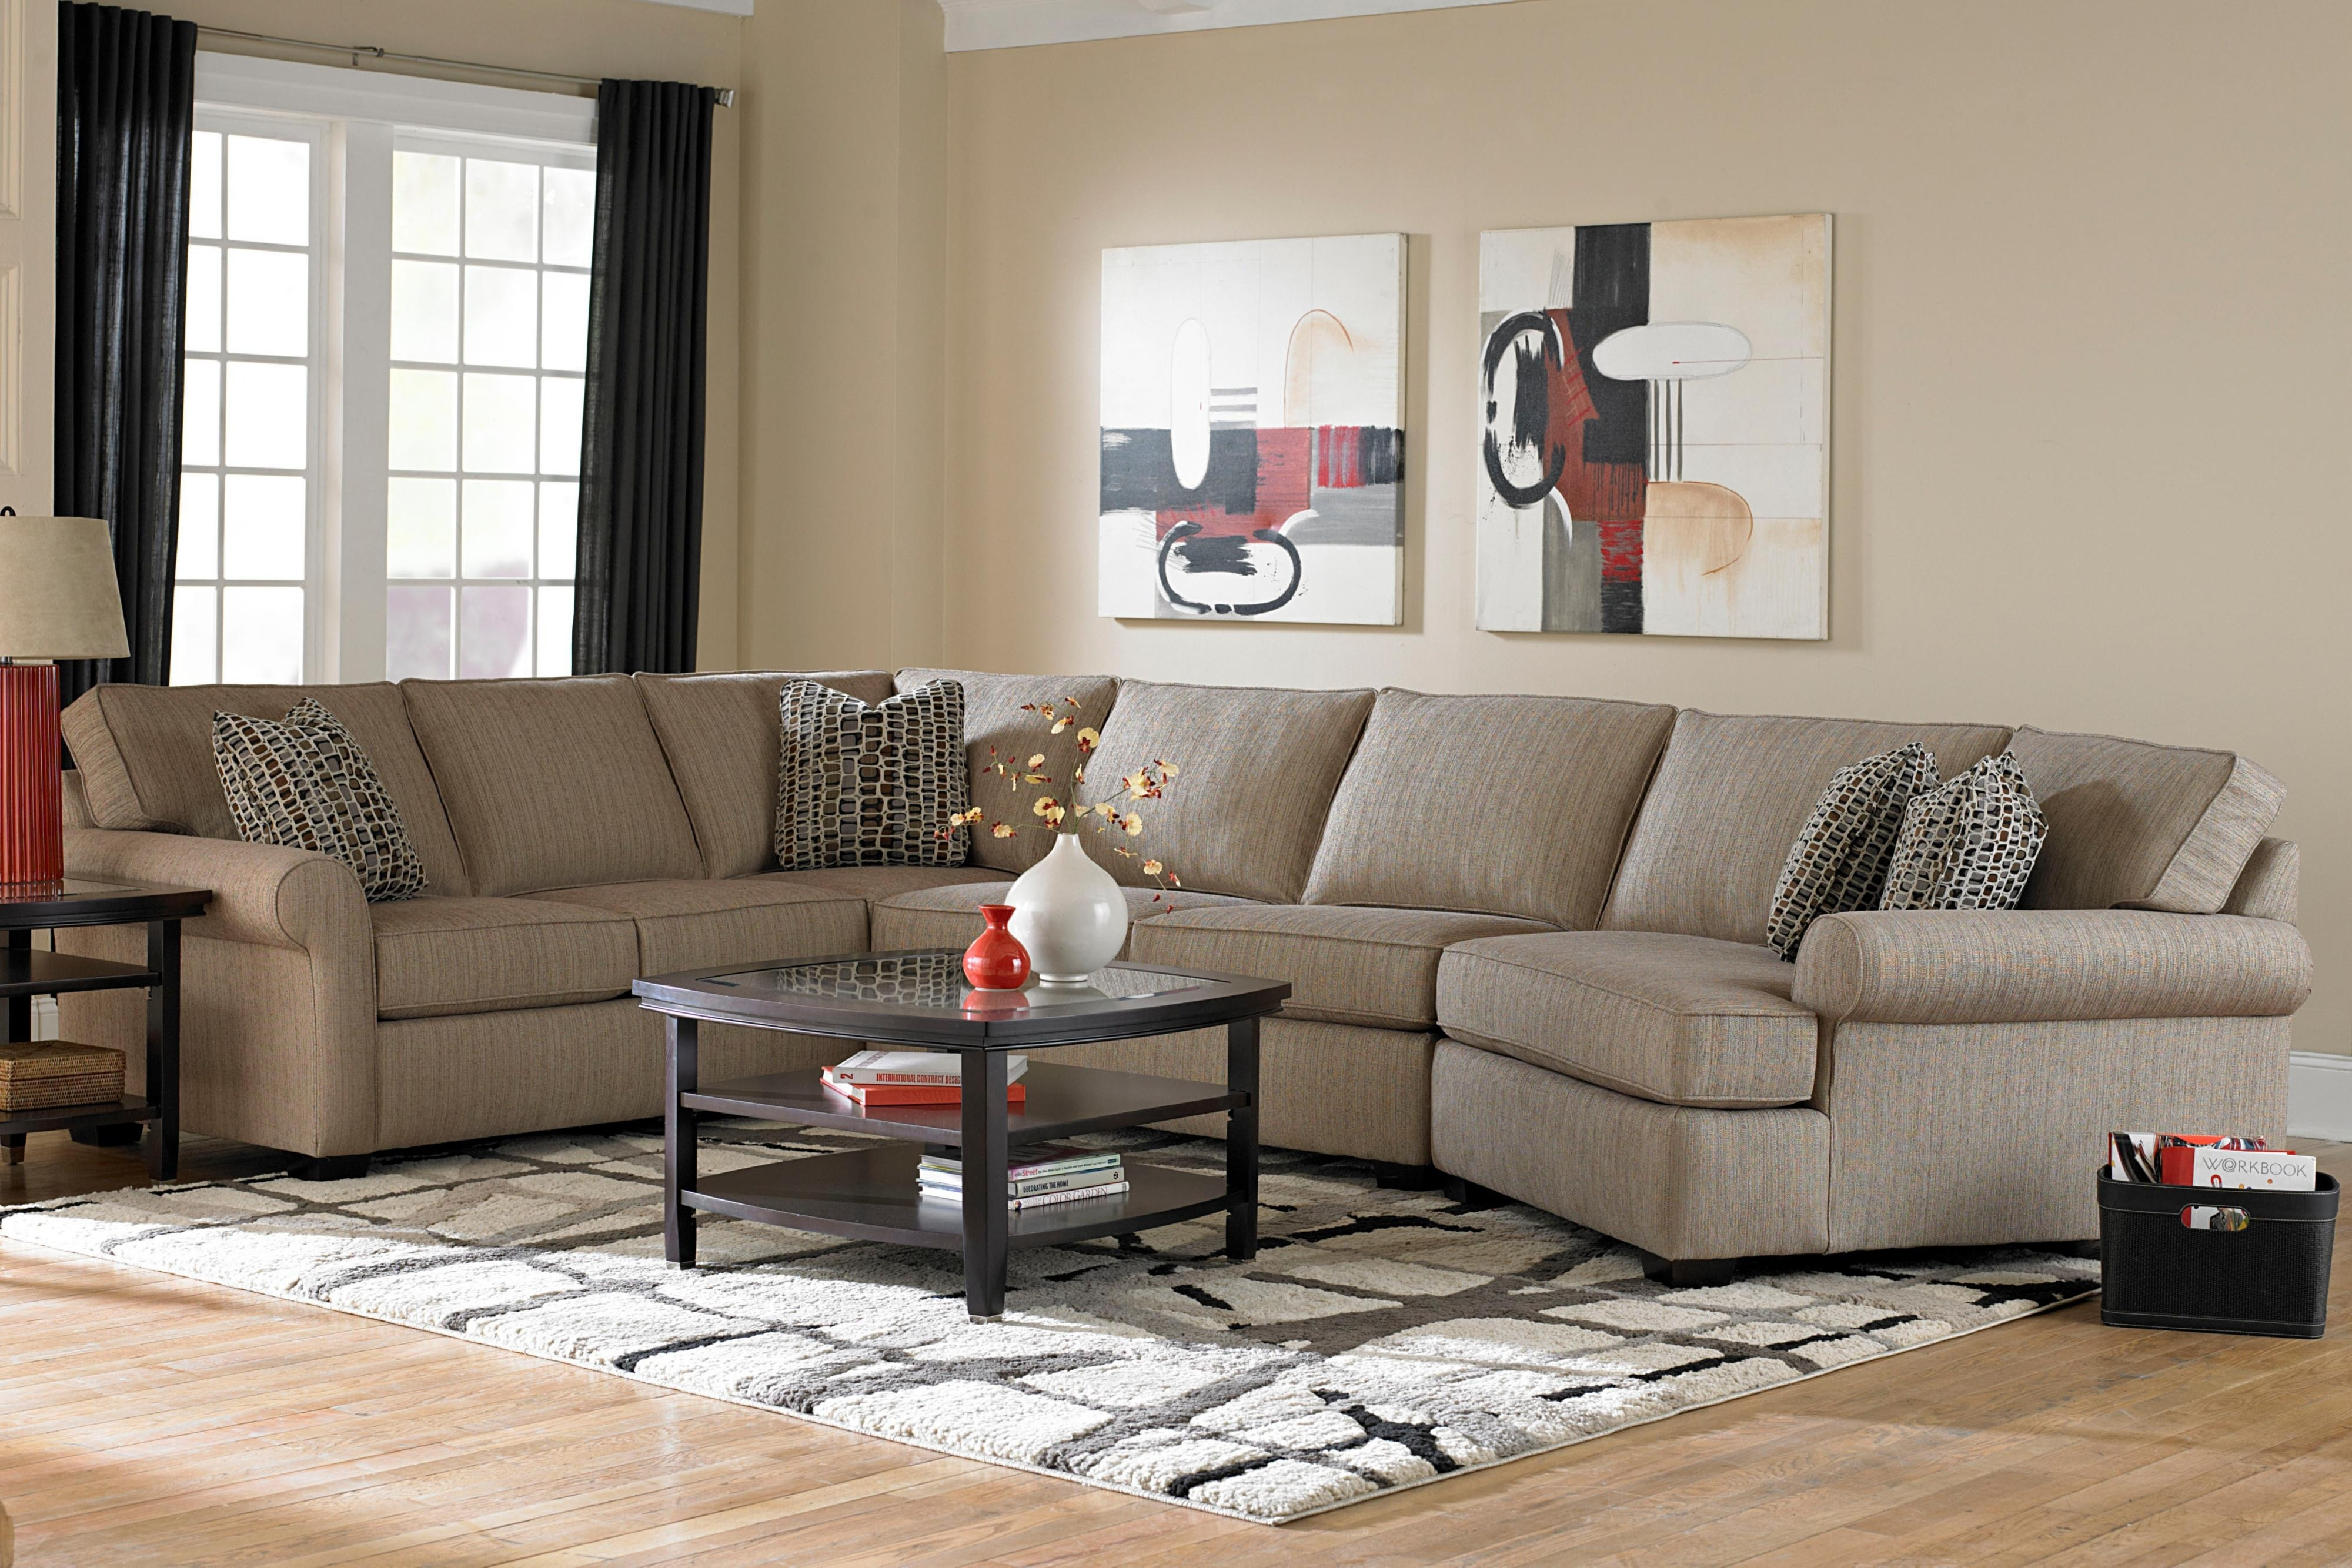 Furniture Stores Warner Robins Ga Elegant Living Room Coffee Table With Regard To Macon Ga Sectional Sofas (Image 6 of 10)